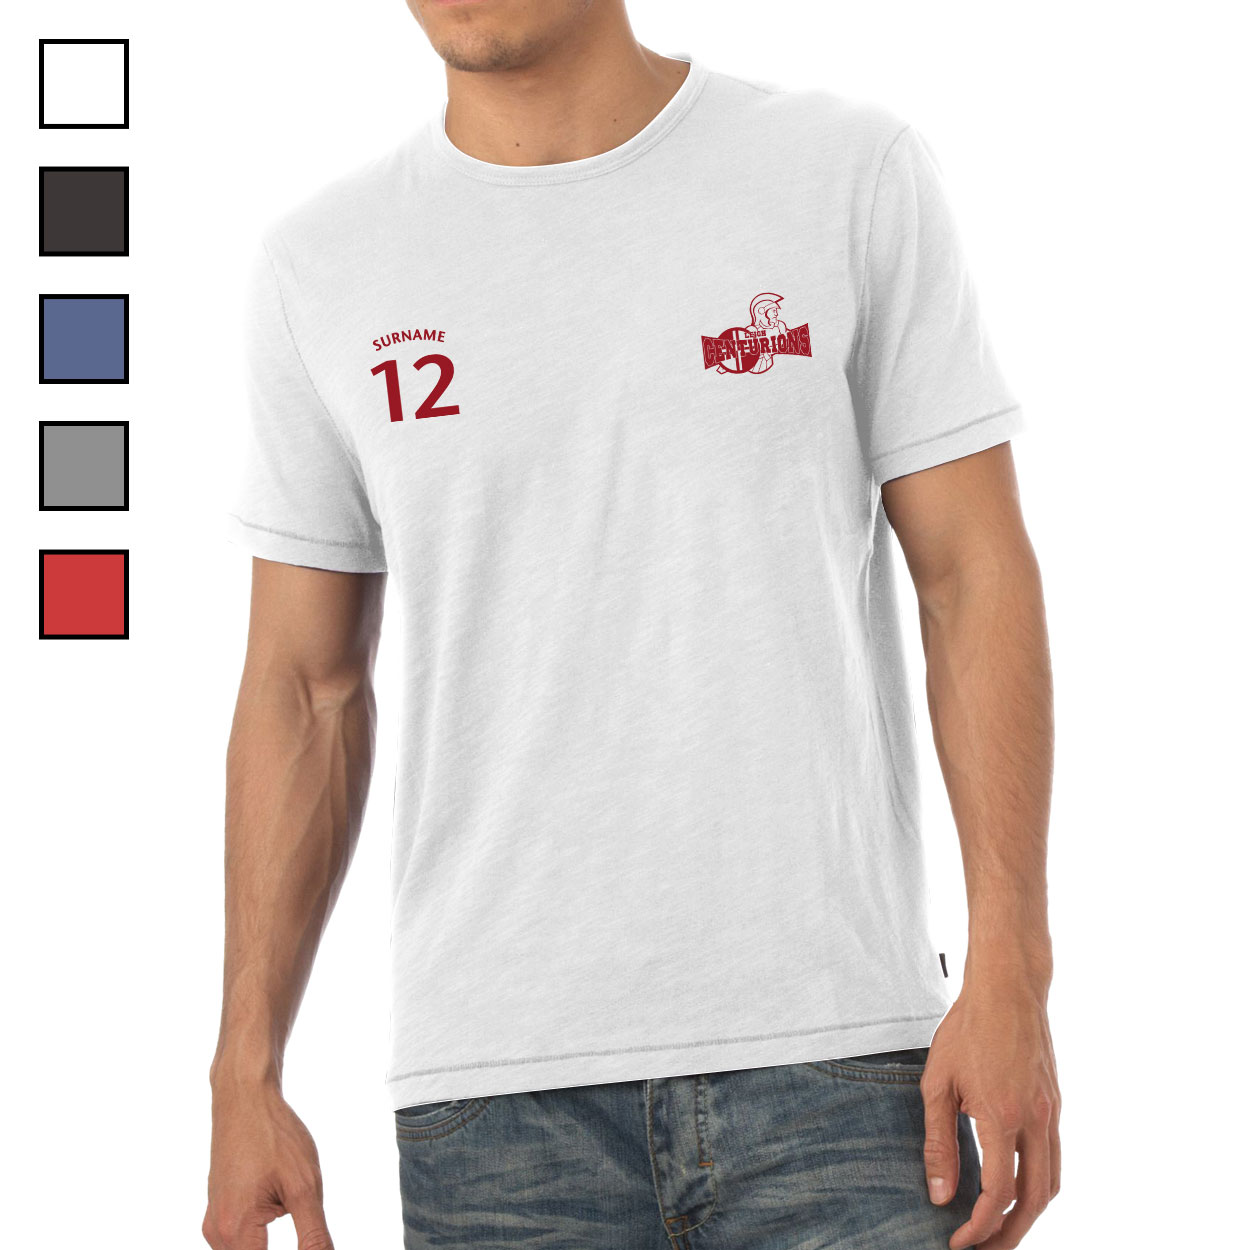 Leigh Centurions Mens Sports T-Shirt